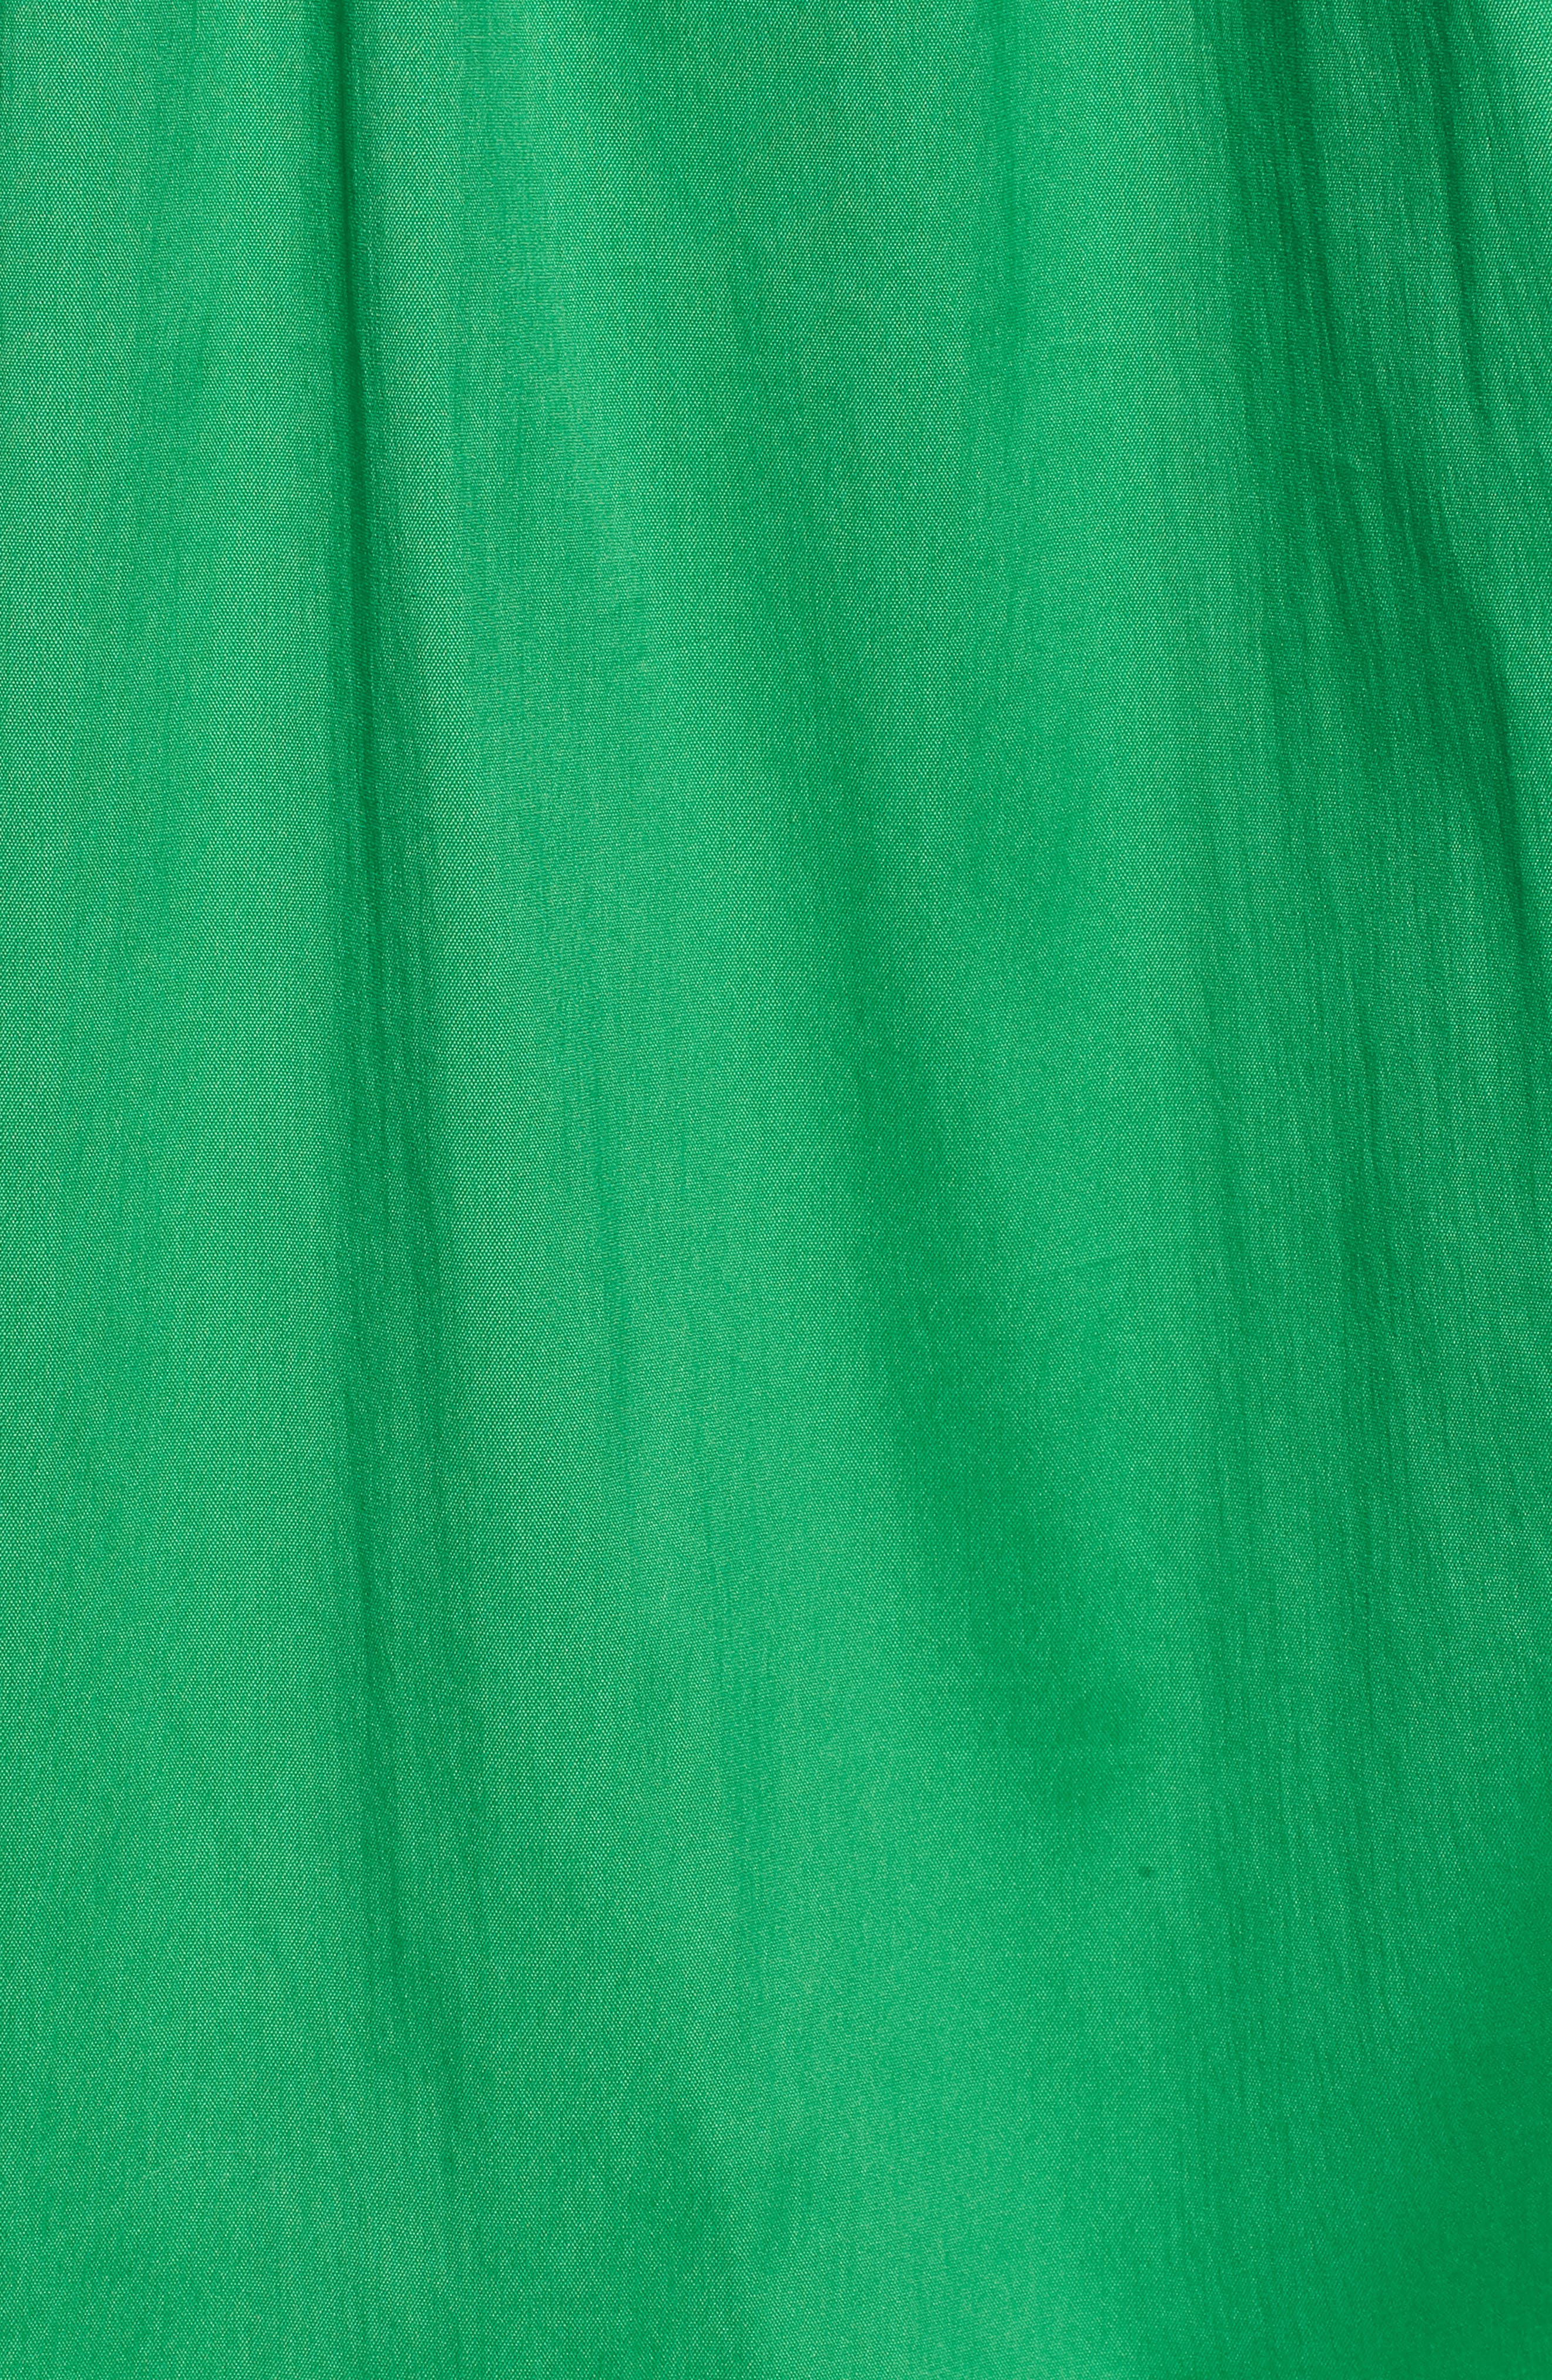 Drawcord Stretch Cotton Blend Dress,                             Alternate thumbnail 6, color,                             Green Kelly